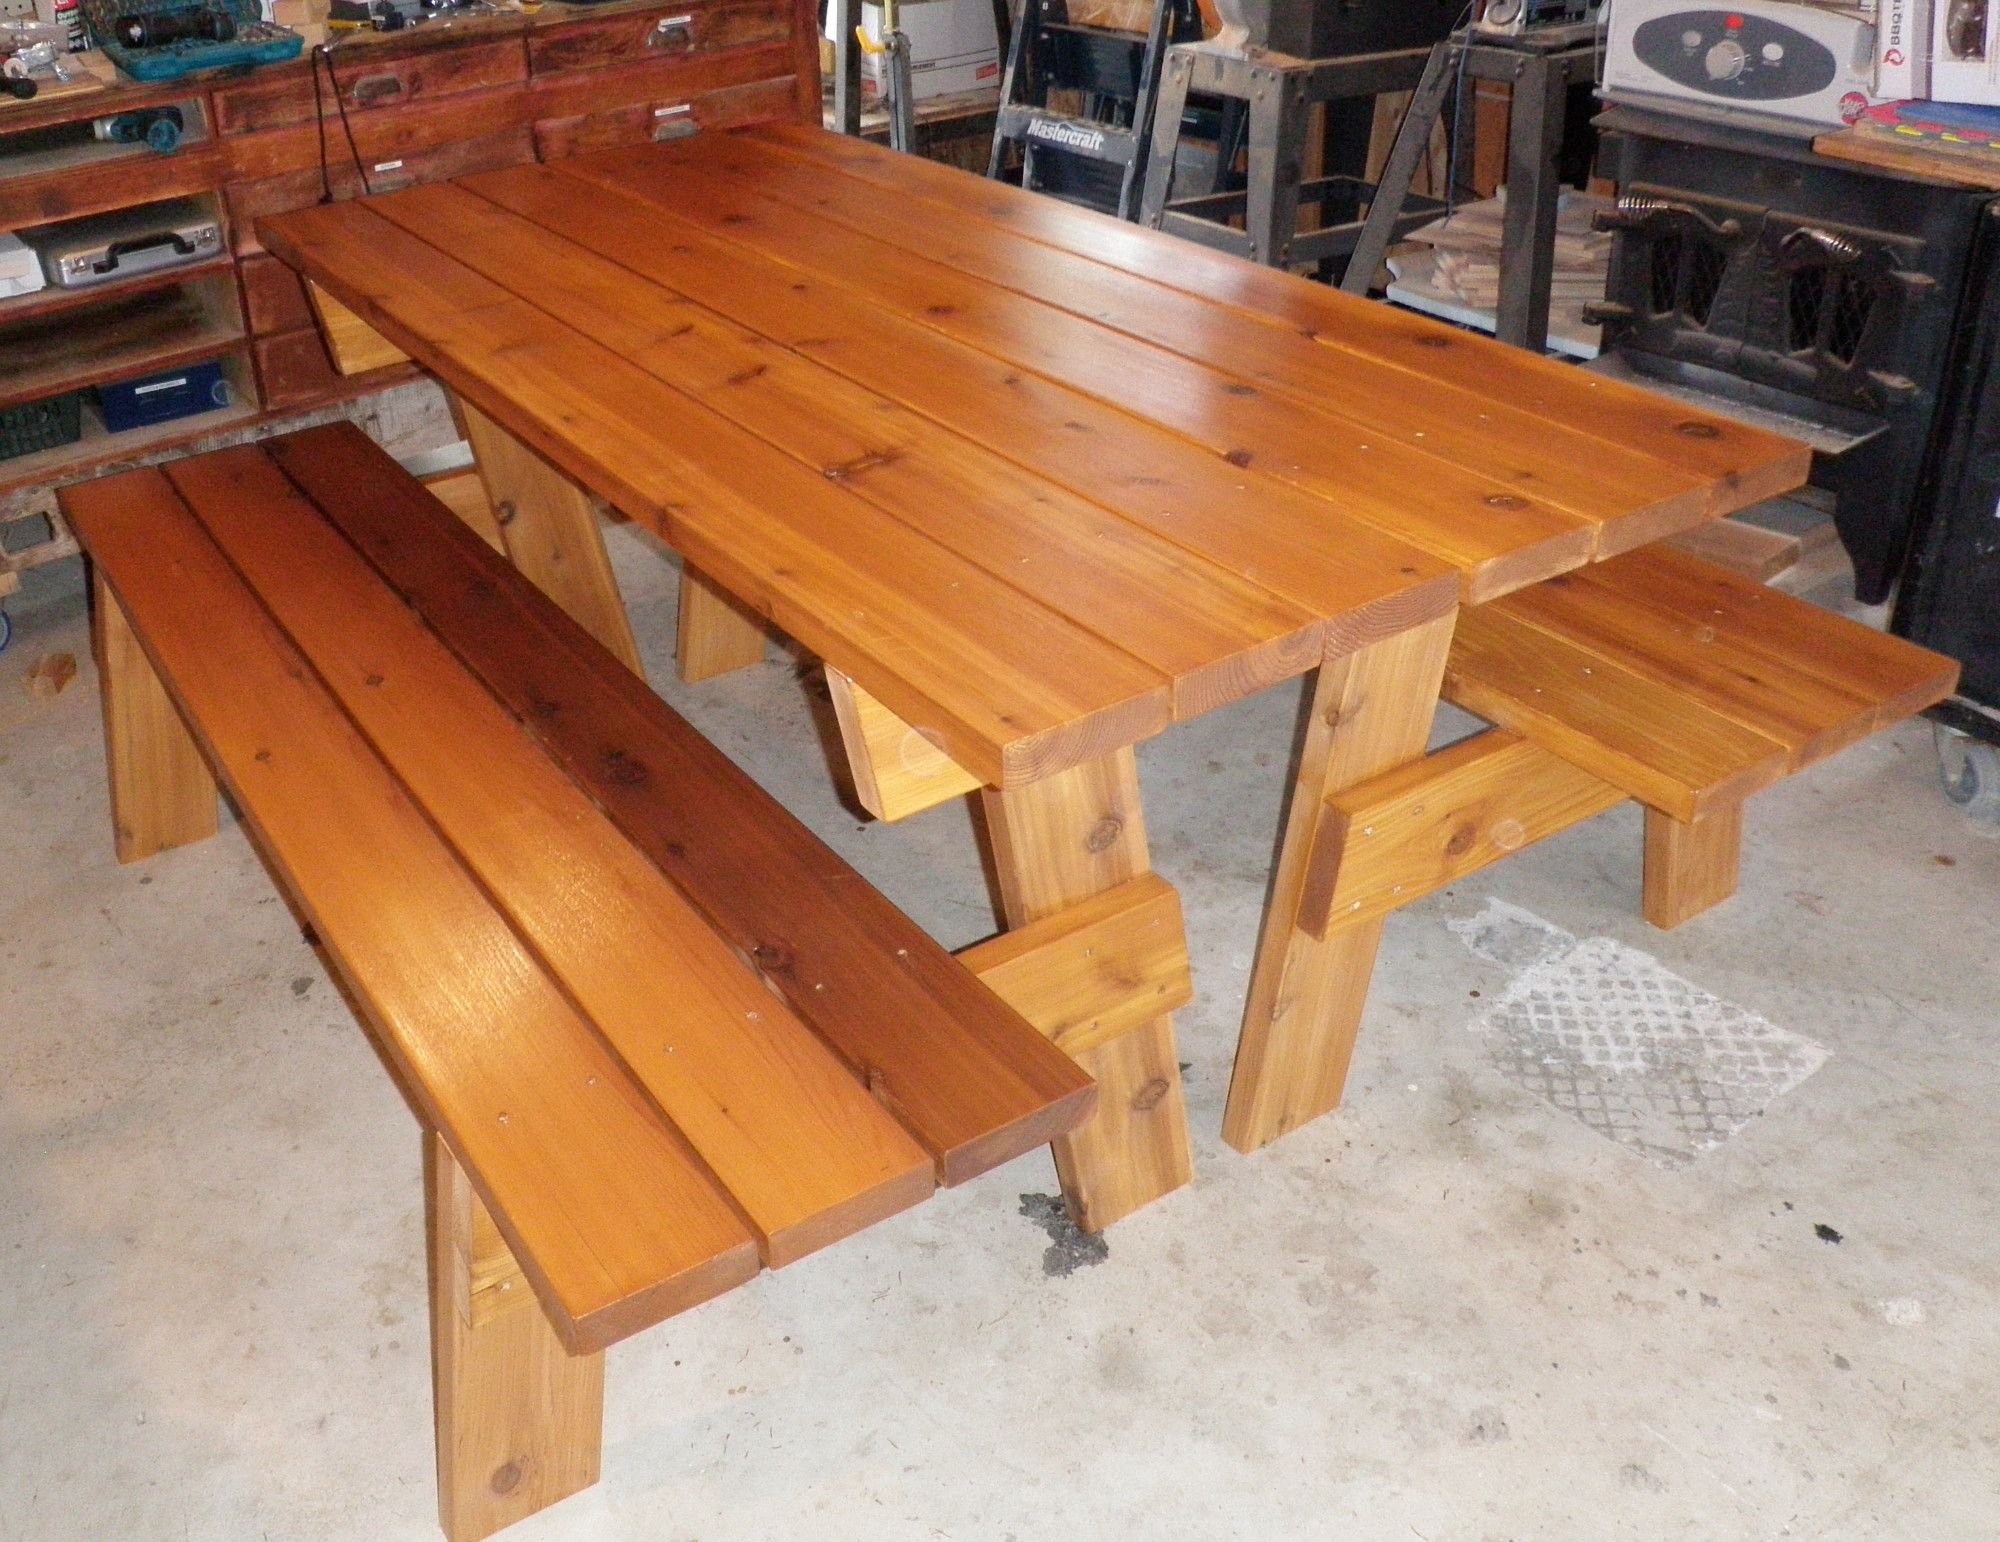 Convertible picnic benches do it yourself home projects from ana convertible picnic benches do it yourself home projects from ana white solutioingenieria Image collections